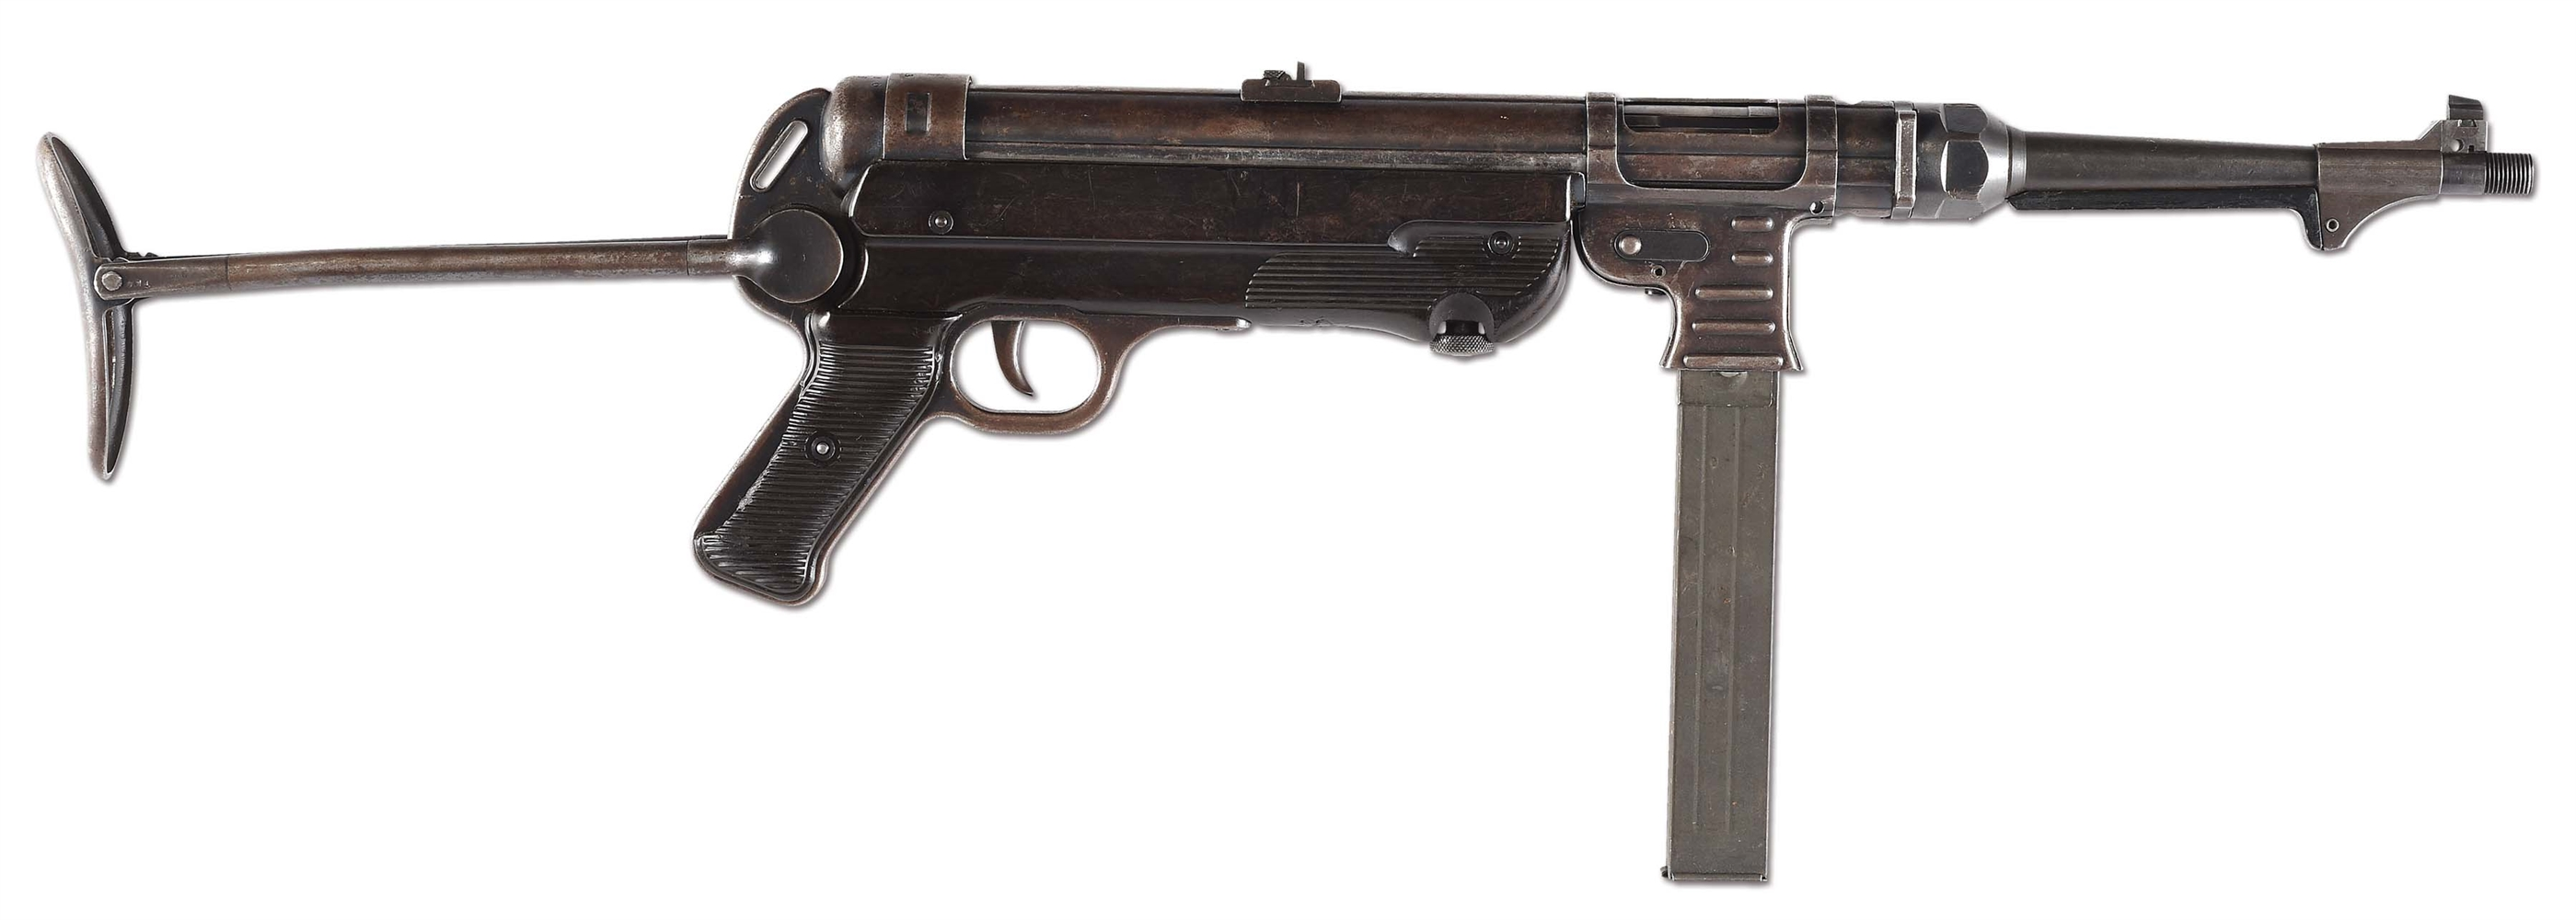 (N) MATCHING ORIGINAL GERMAN WWII MP-40 MACHINE GUN (CURIO & RELIC) (DEACTIVATED STATUS).